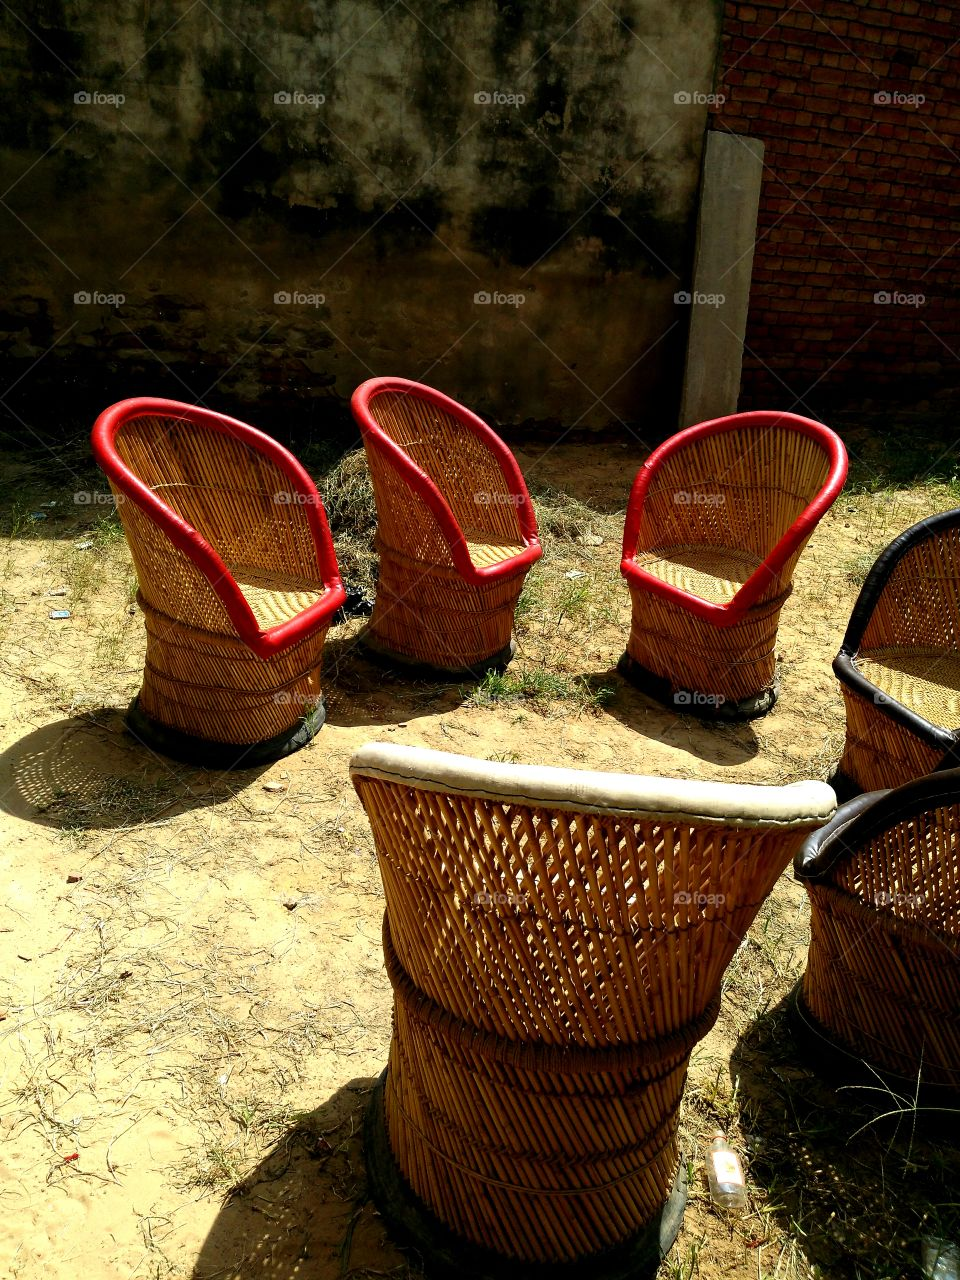 Empty wicker chairs